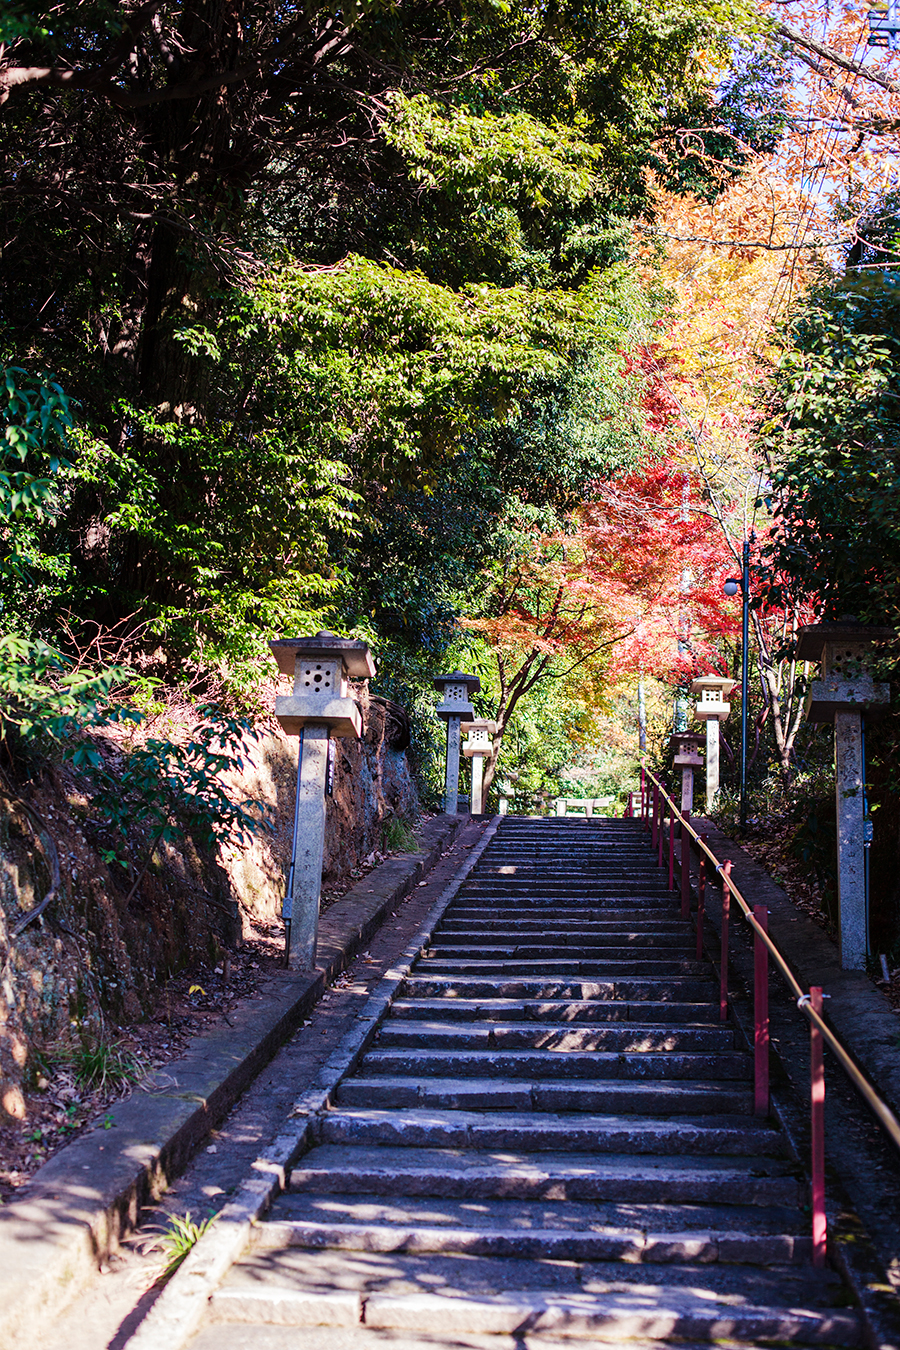 Stairs in autumn leaves at Fushimi Inari in Kyoto, Japan.